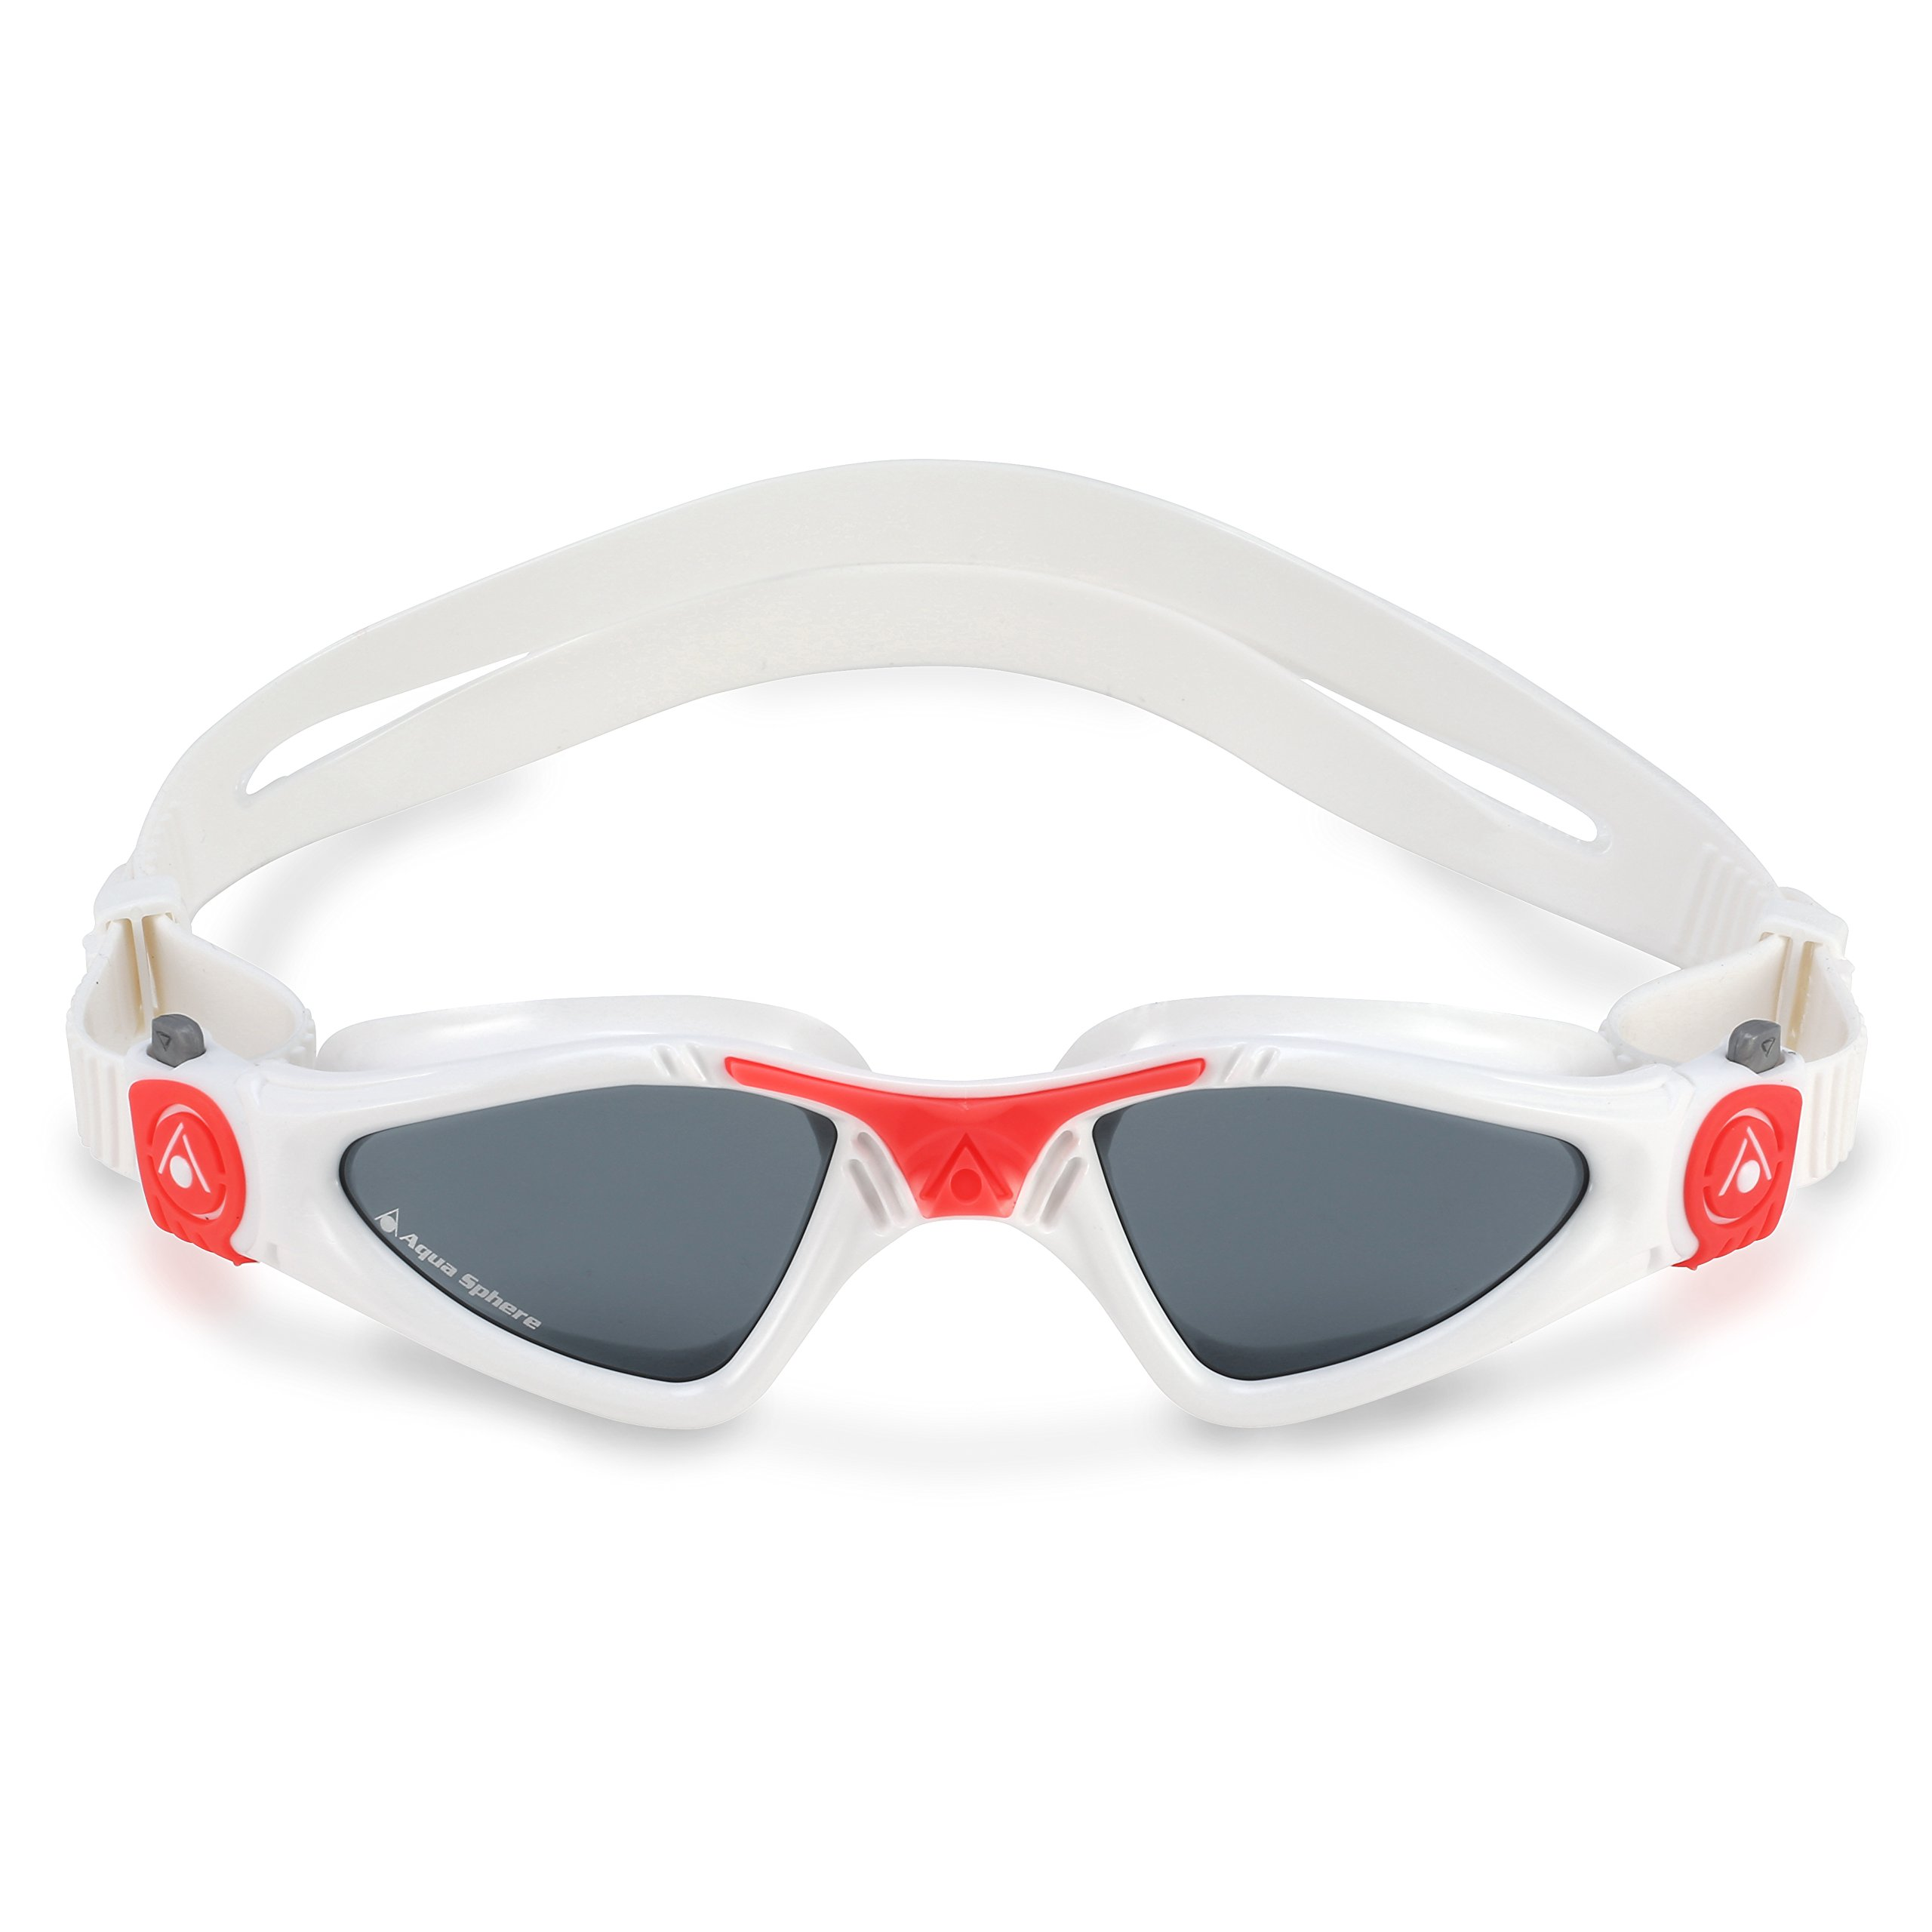 Aqua Sphere Kayenne Ladies Swimming Goggles Smoke Lens, White & Coral UV Protection Anti Fog Swim Goggles for Women by Aqua Sphere (Image #3)